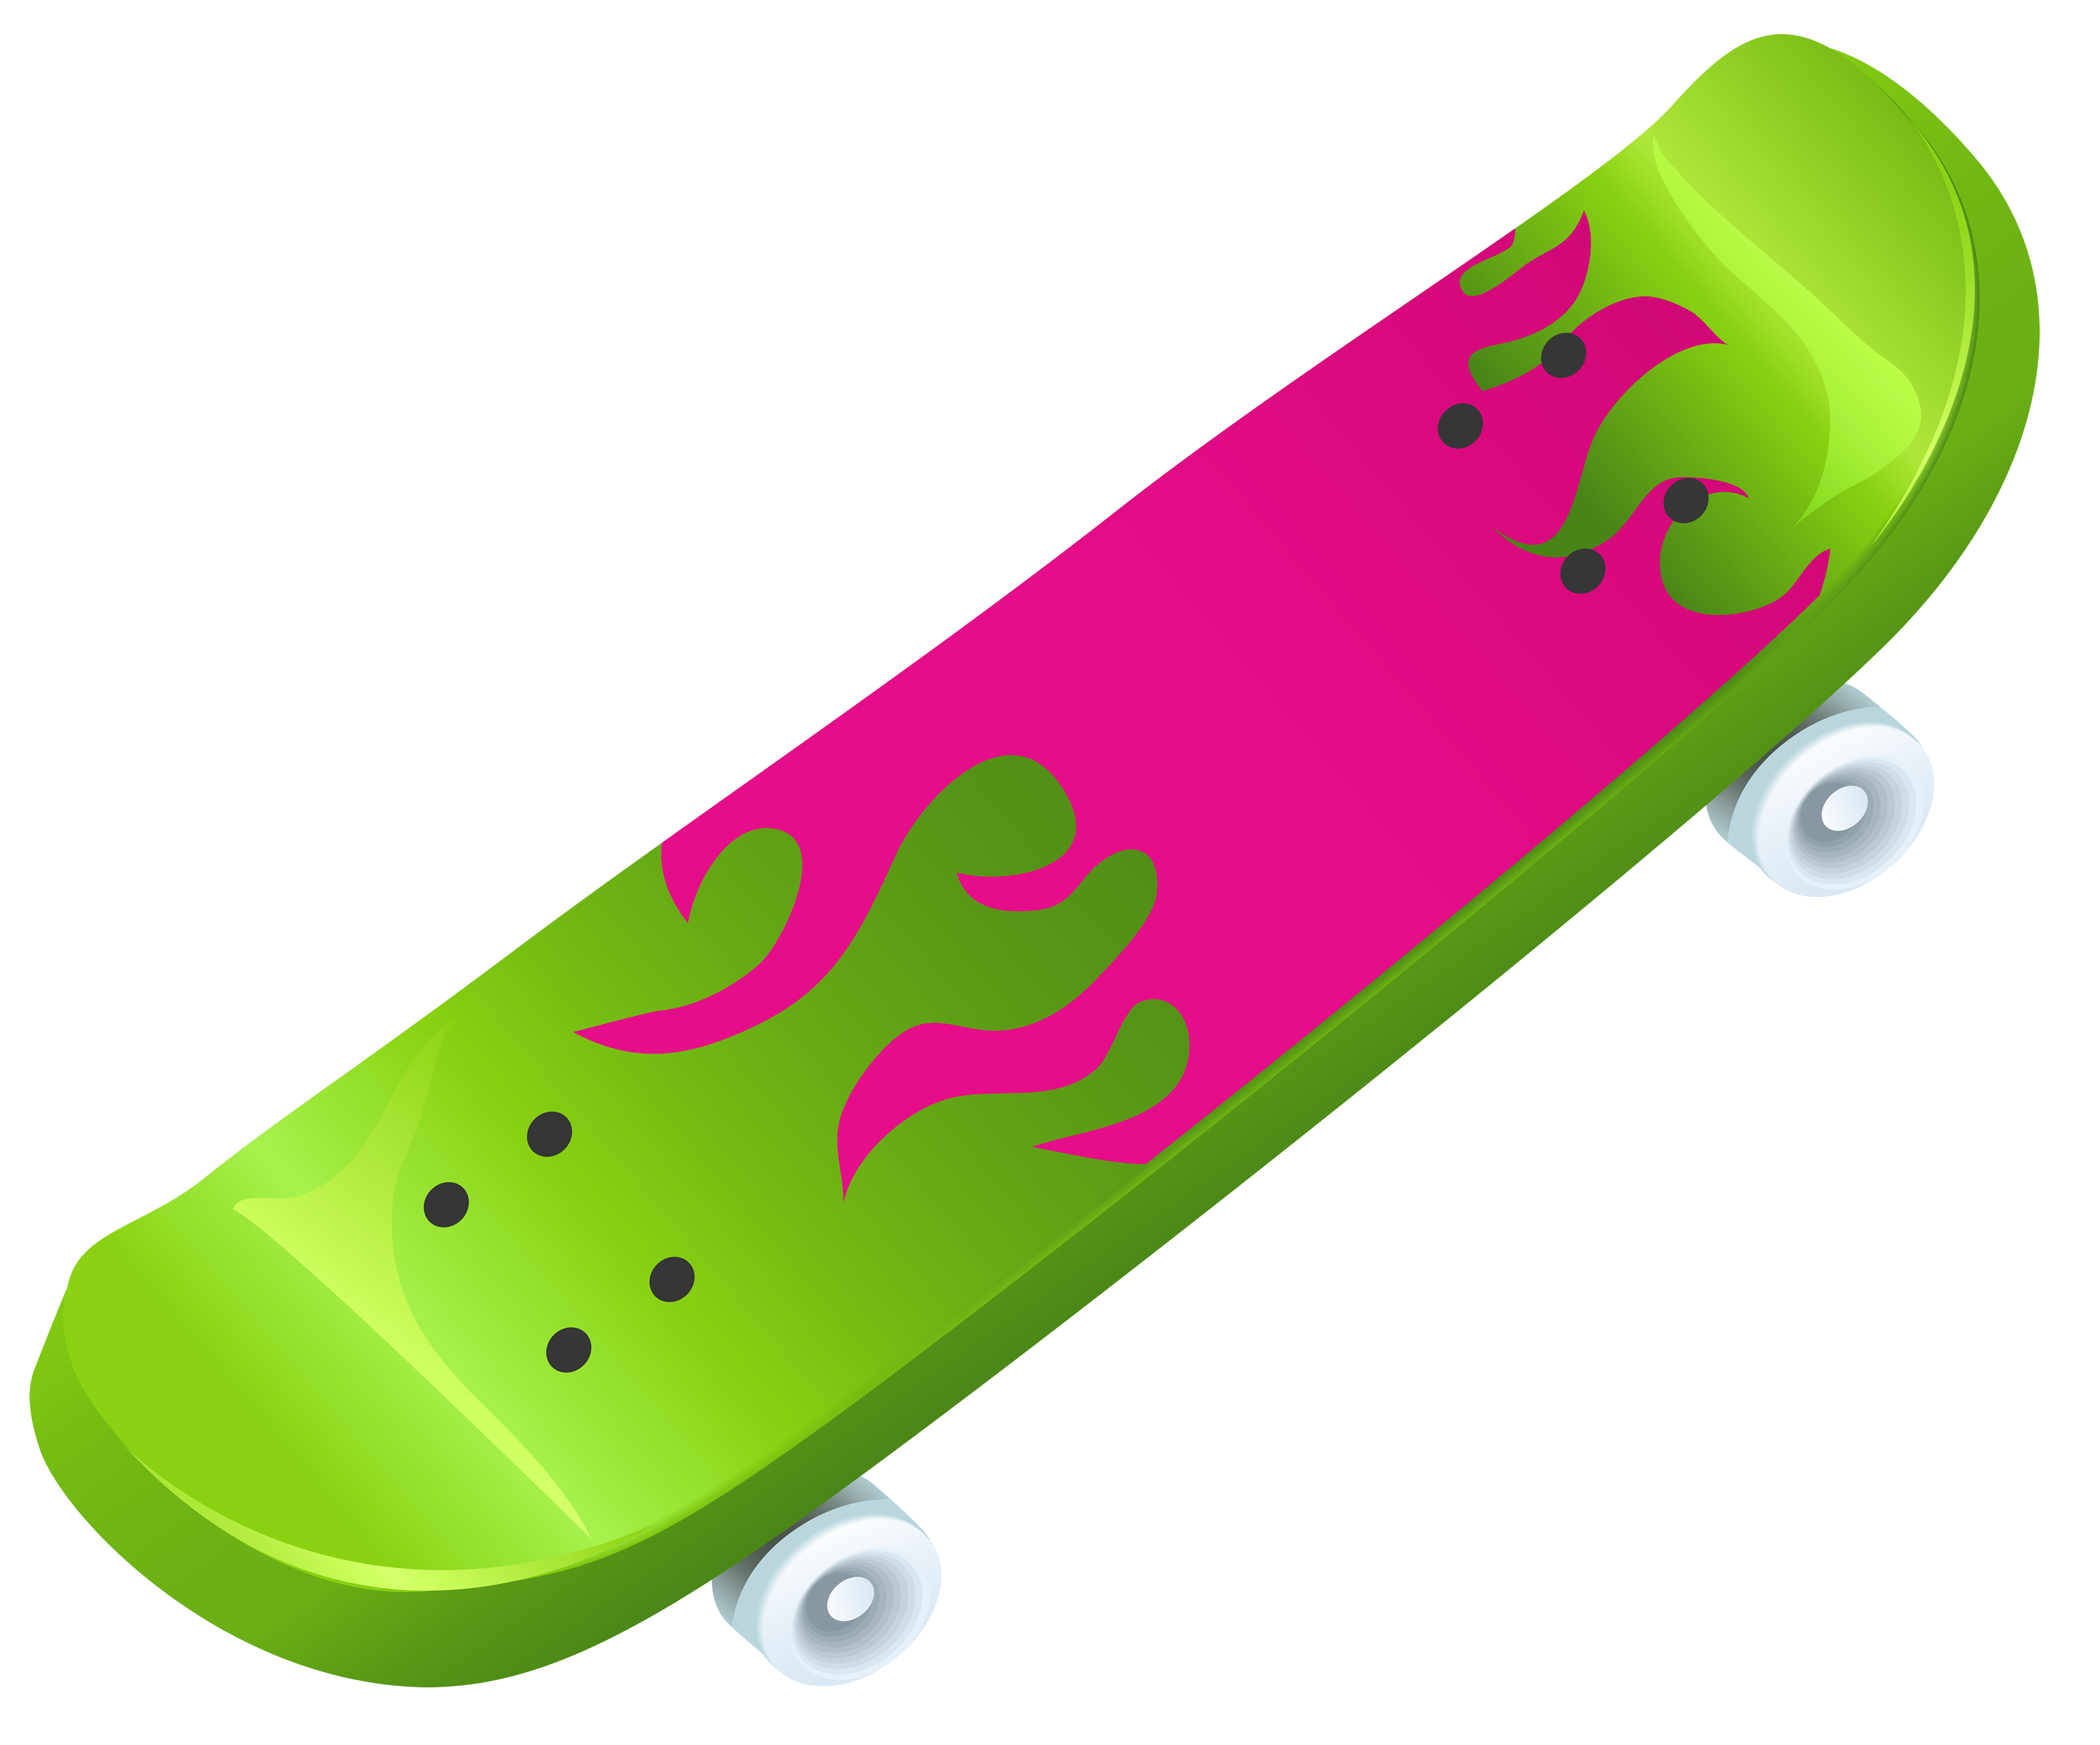 Skate board clipart jpg transparent Free Skateboarding Cliparts Borders, Download Free Clip Art, Free ... jpg transparent